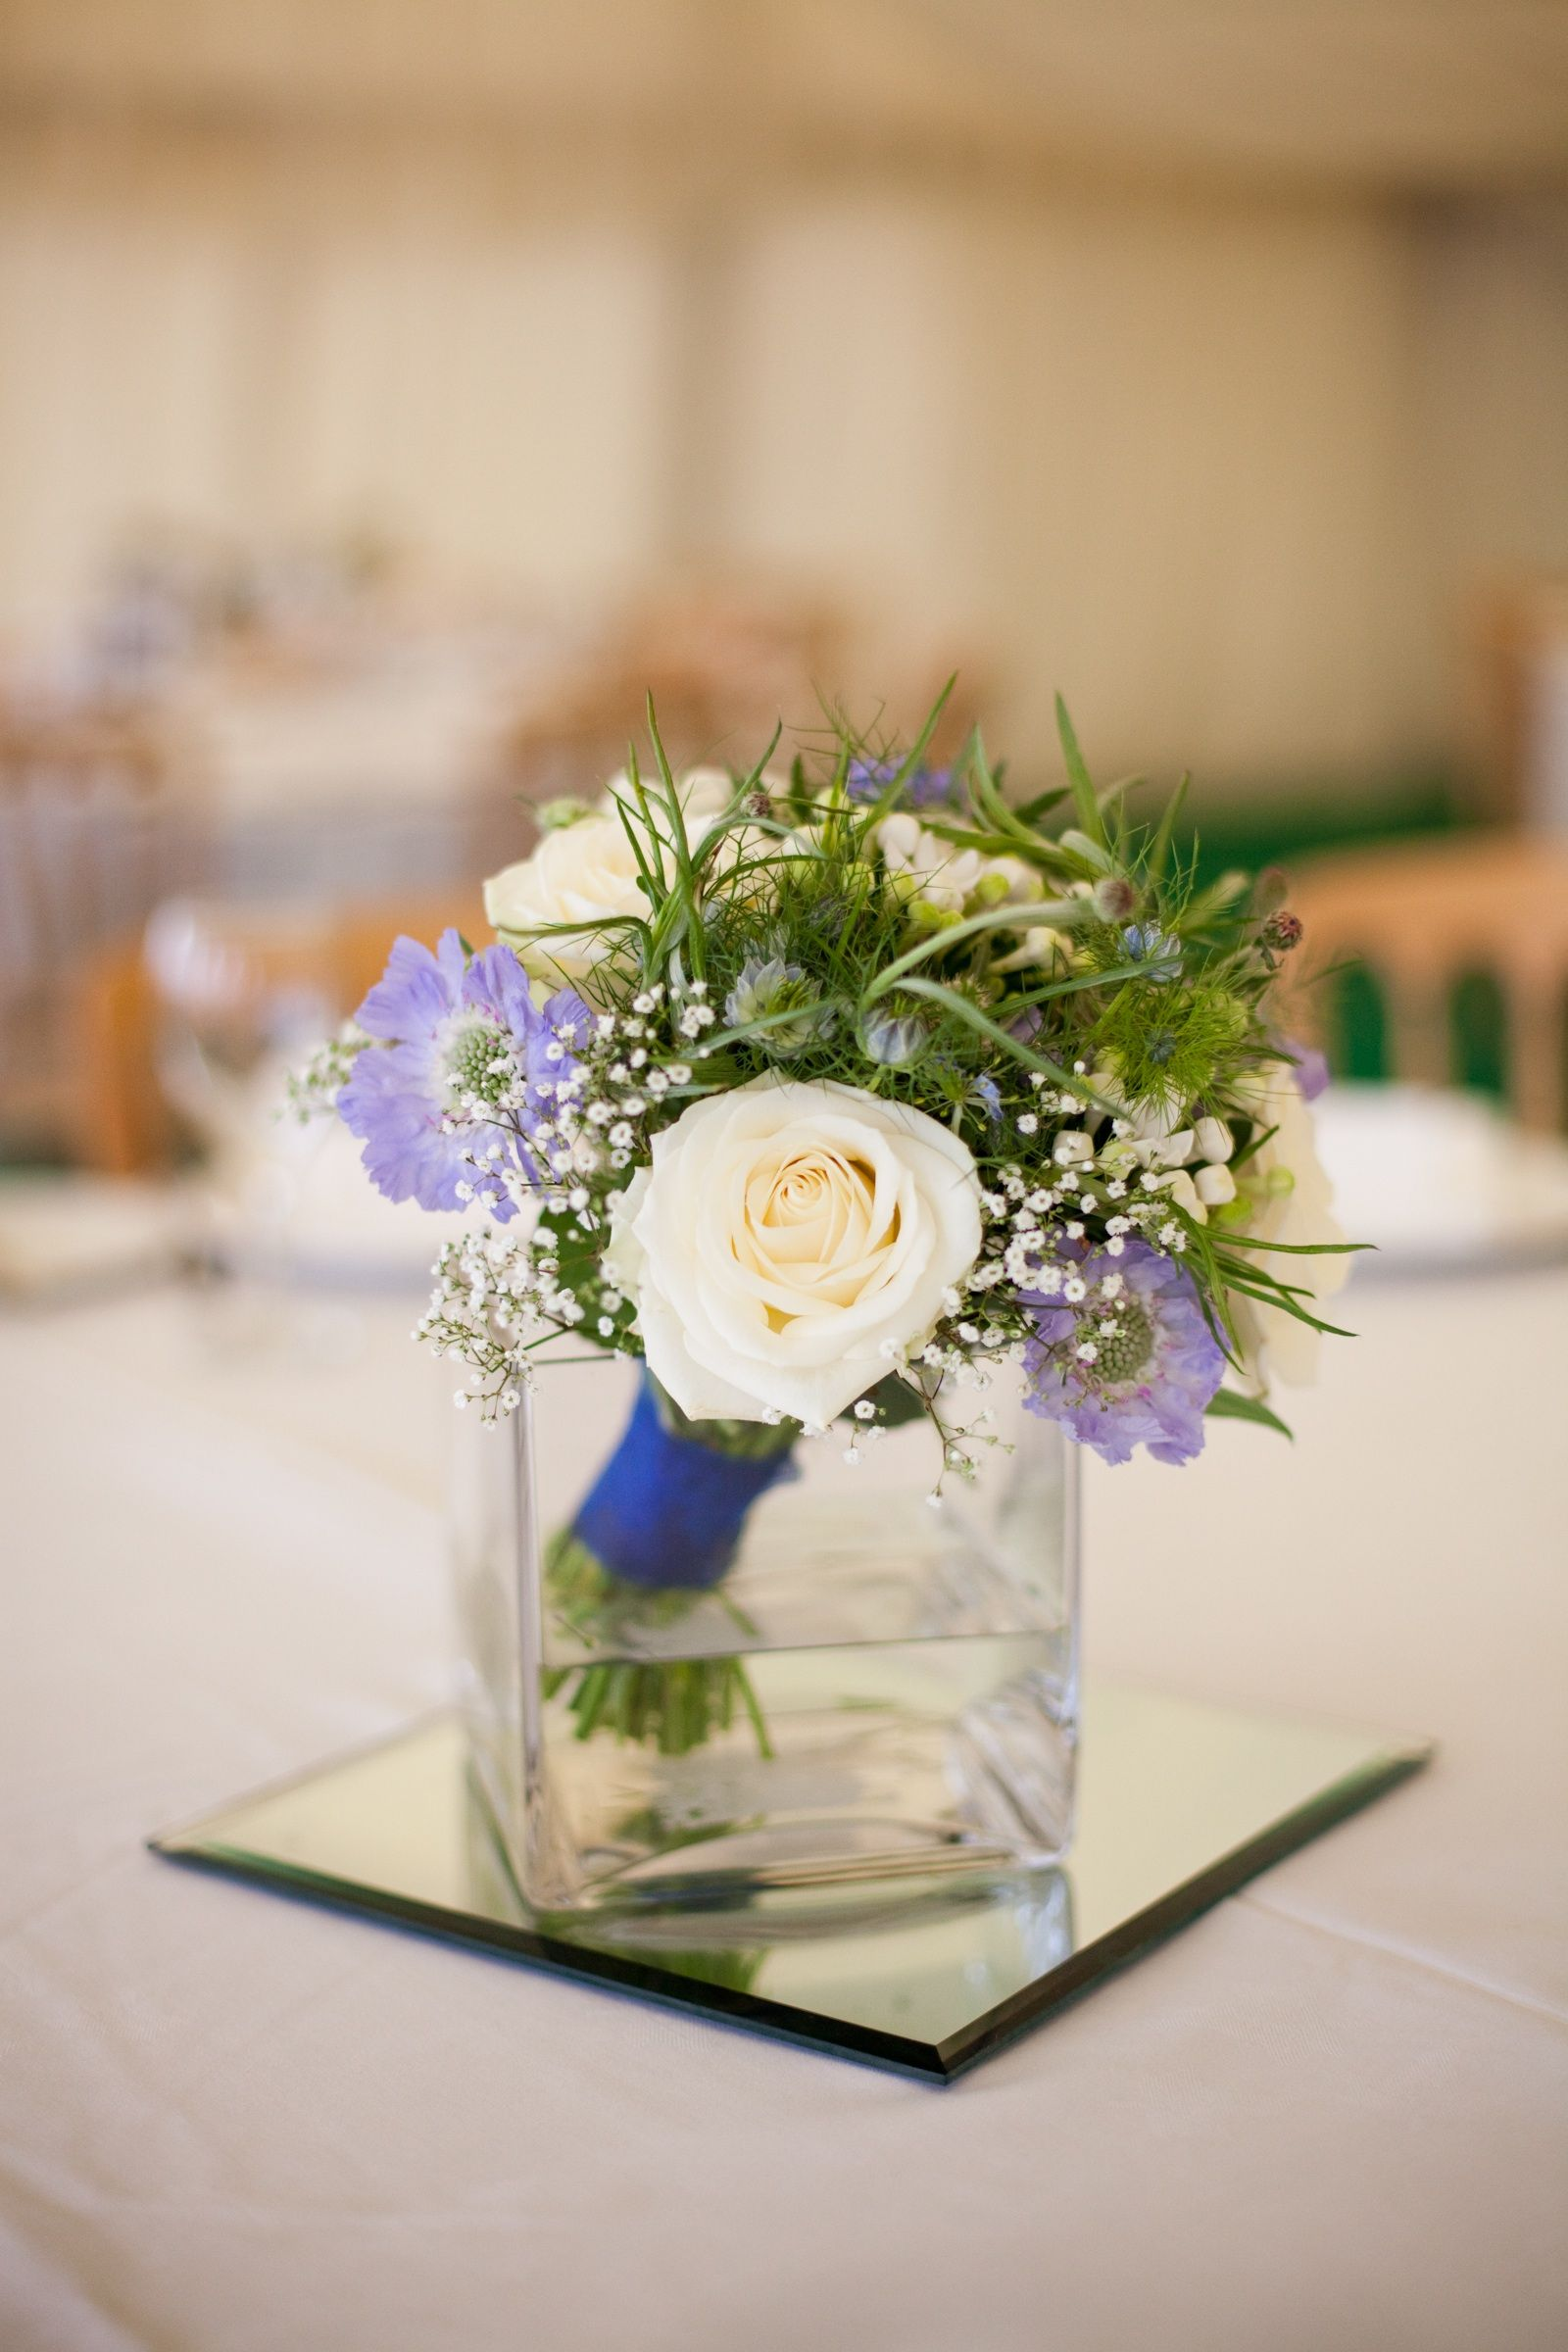 simple flower table arrangements, put your bridesmaids